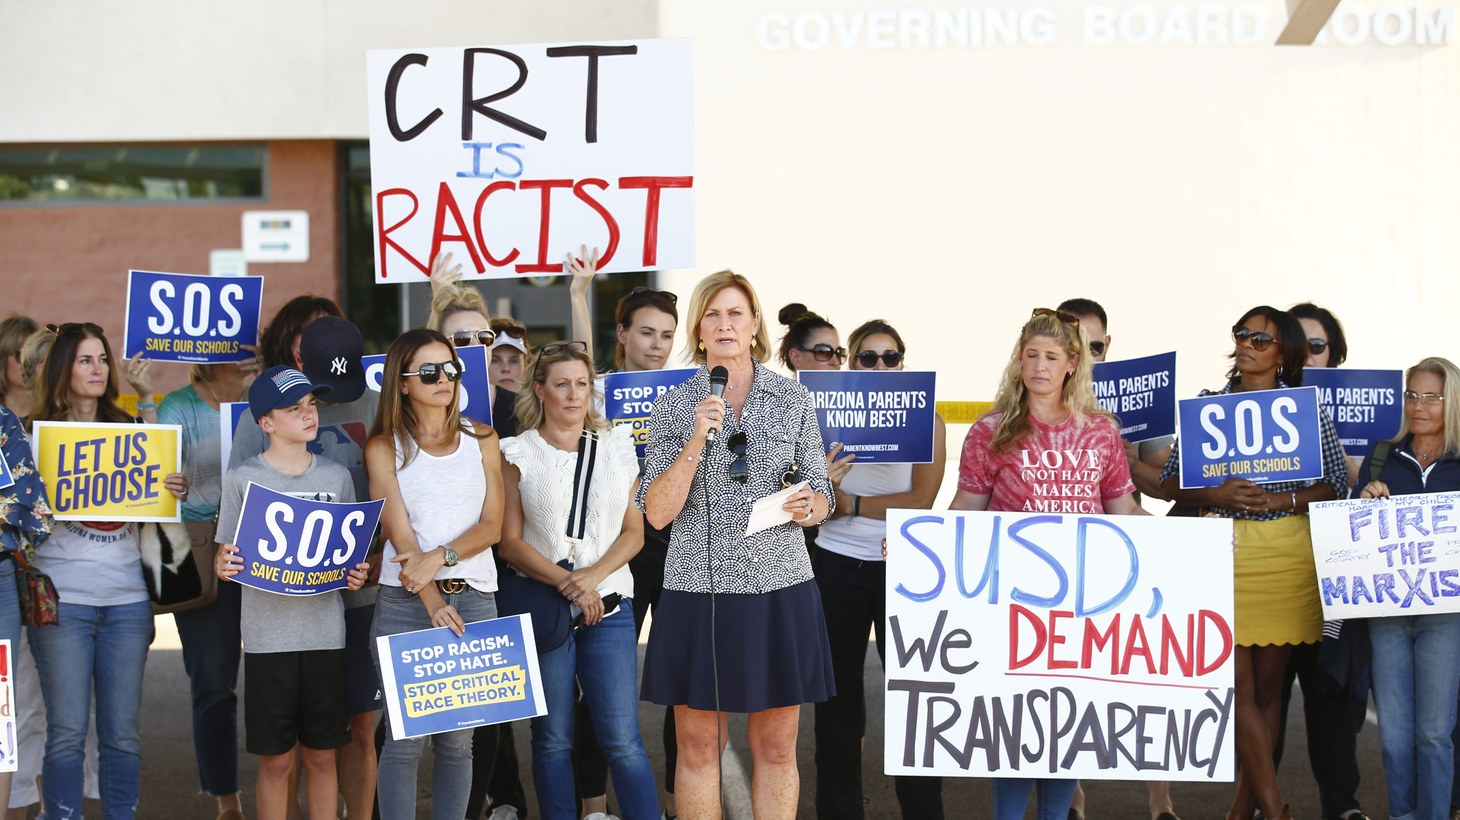 Amy Carney speaks on behalf of parents during a protest against critical race theory being taught at Scottsdale Unified School District, May 24, 2021.